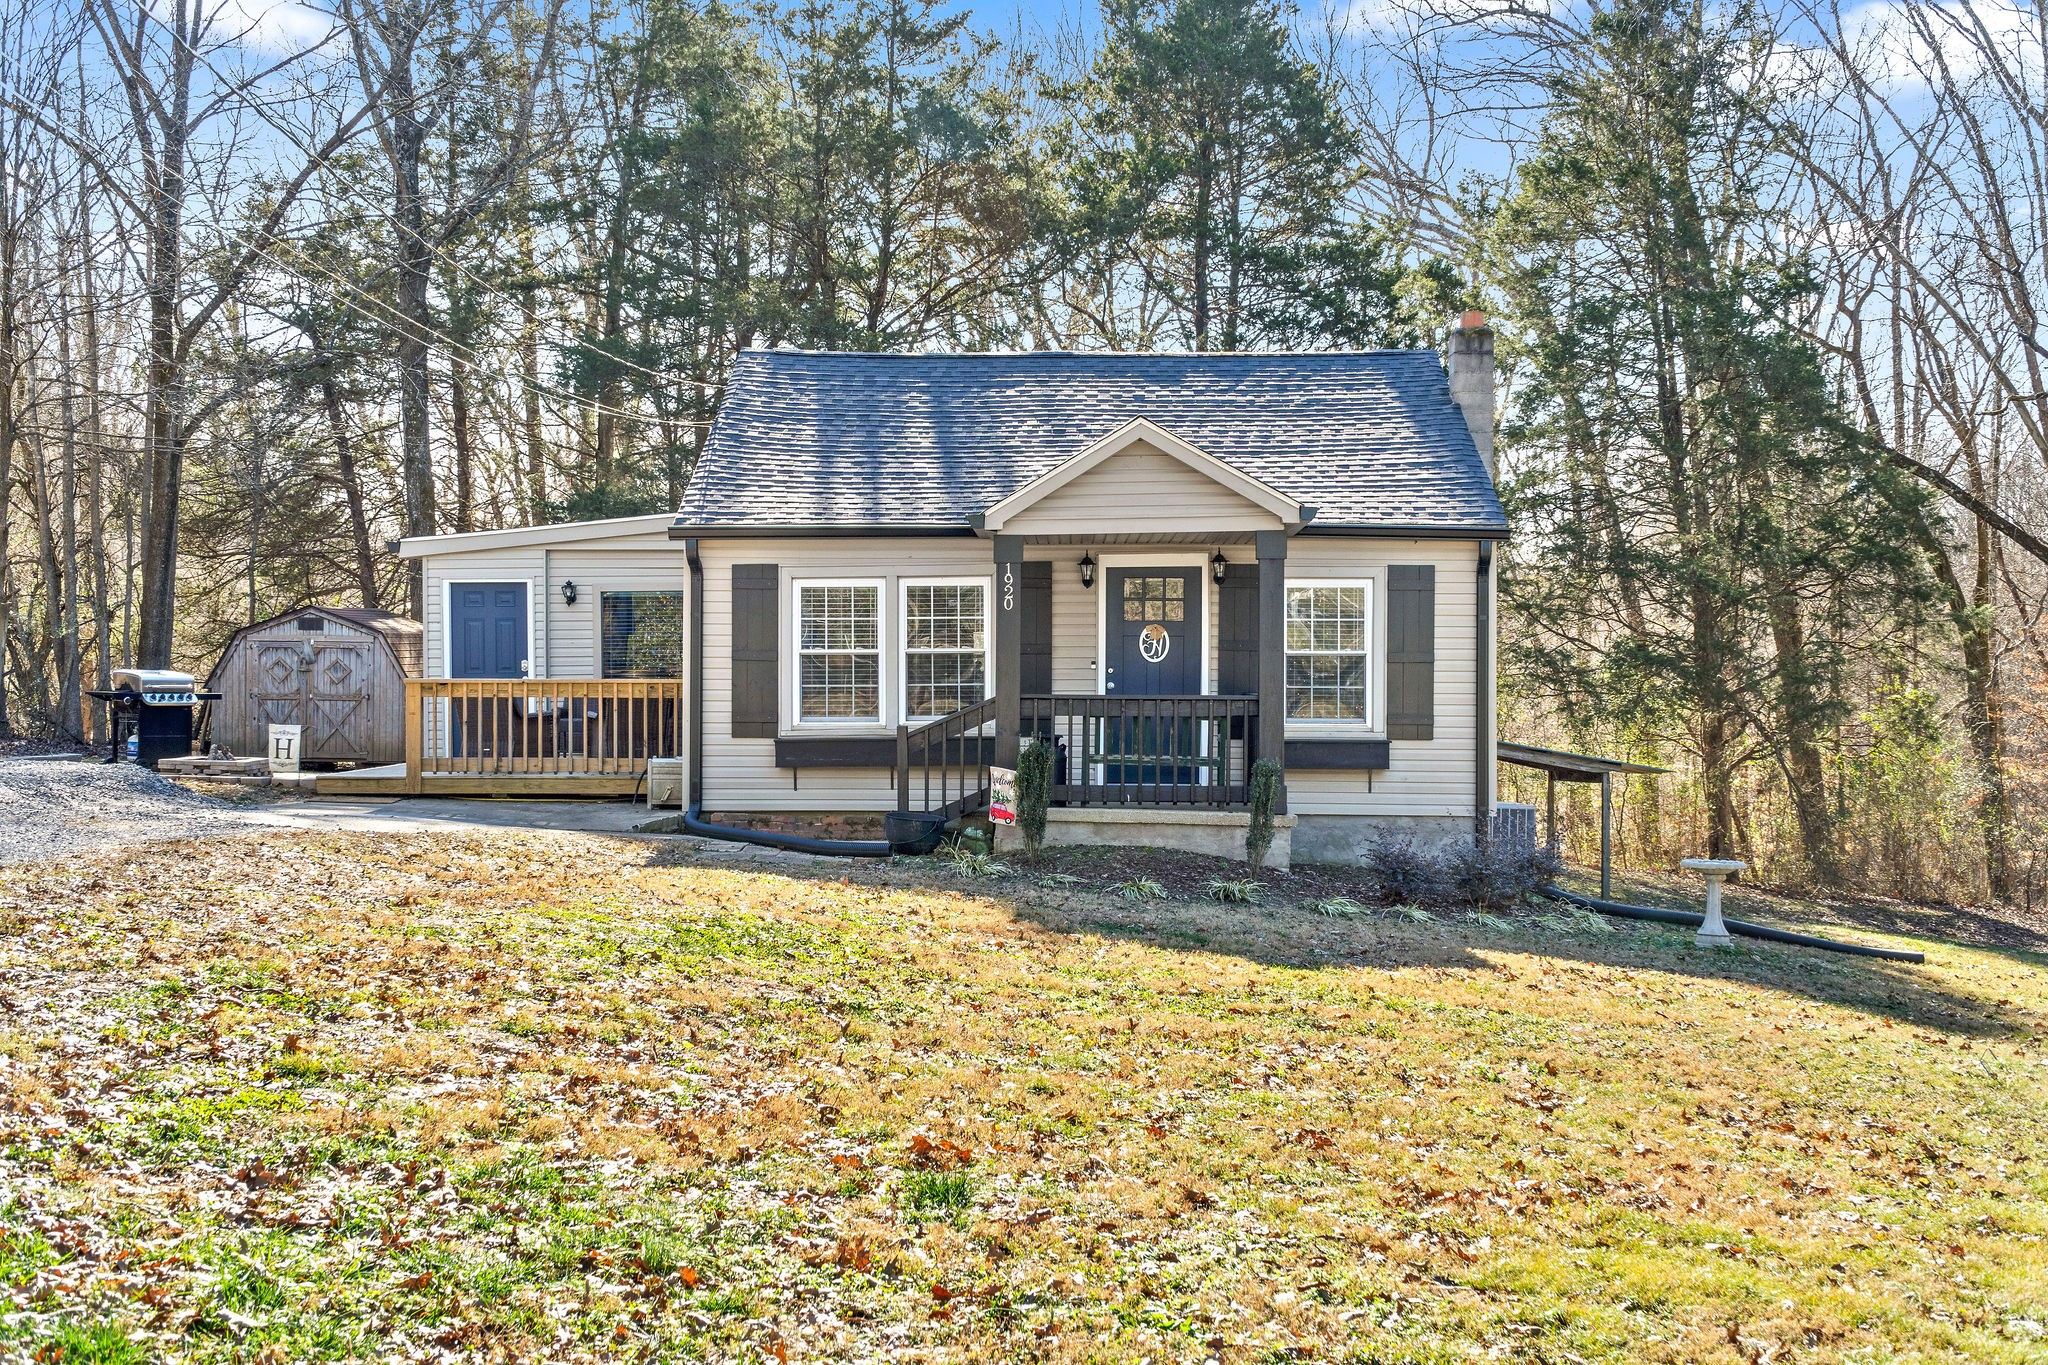 1920 Palmyra Rd Property Photo - Palmyra, TN real estate listing